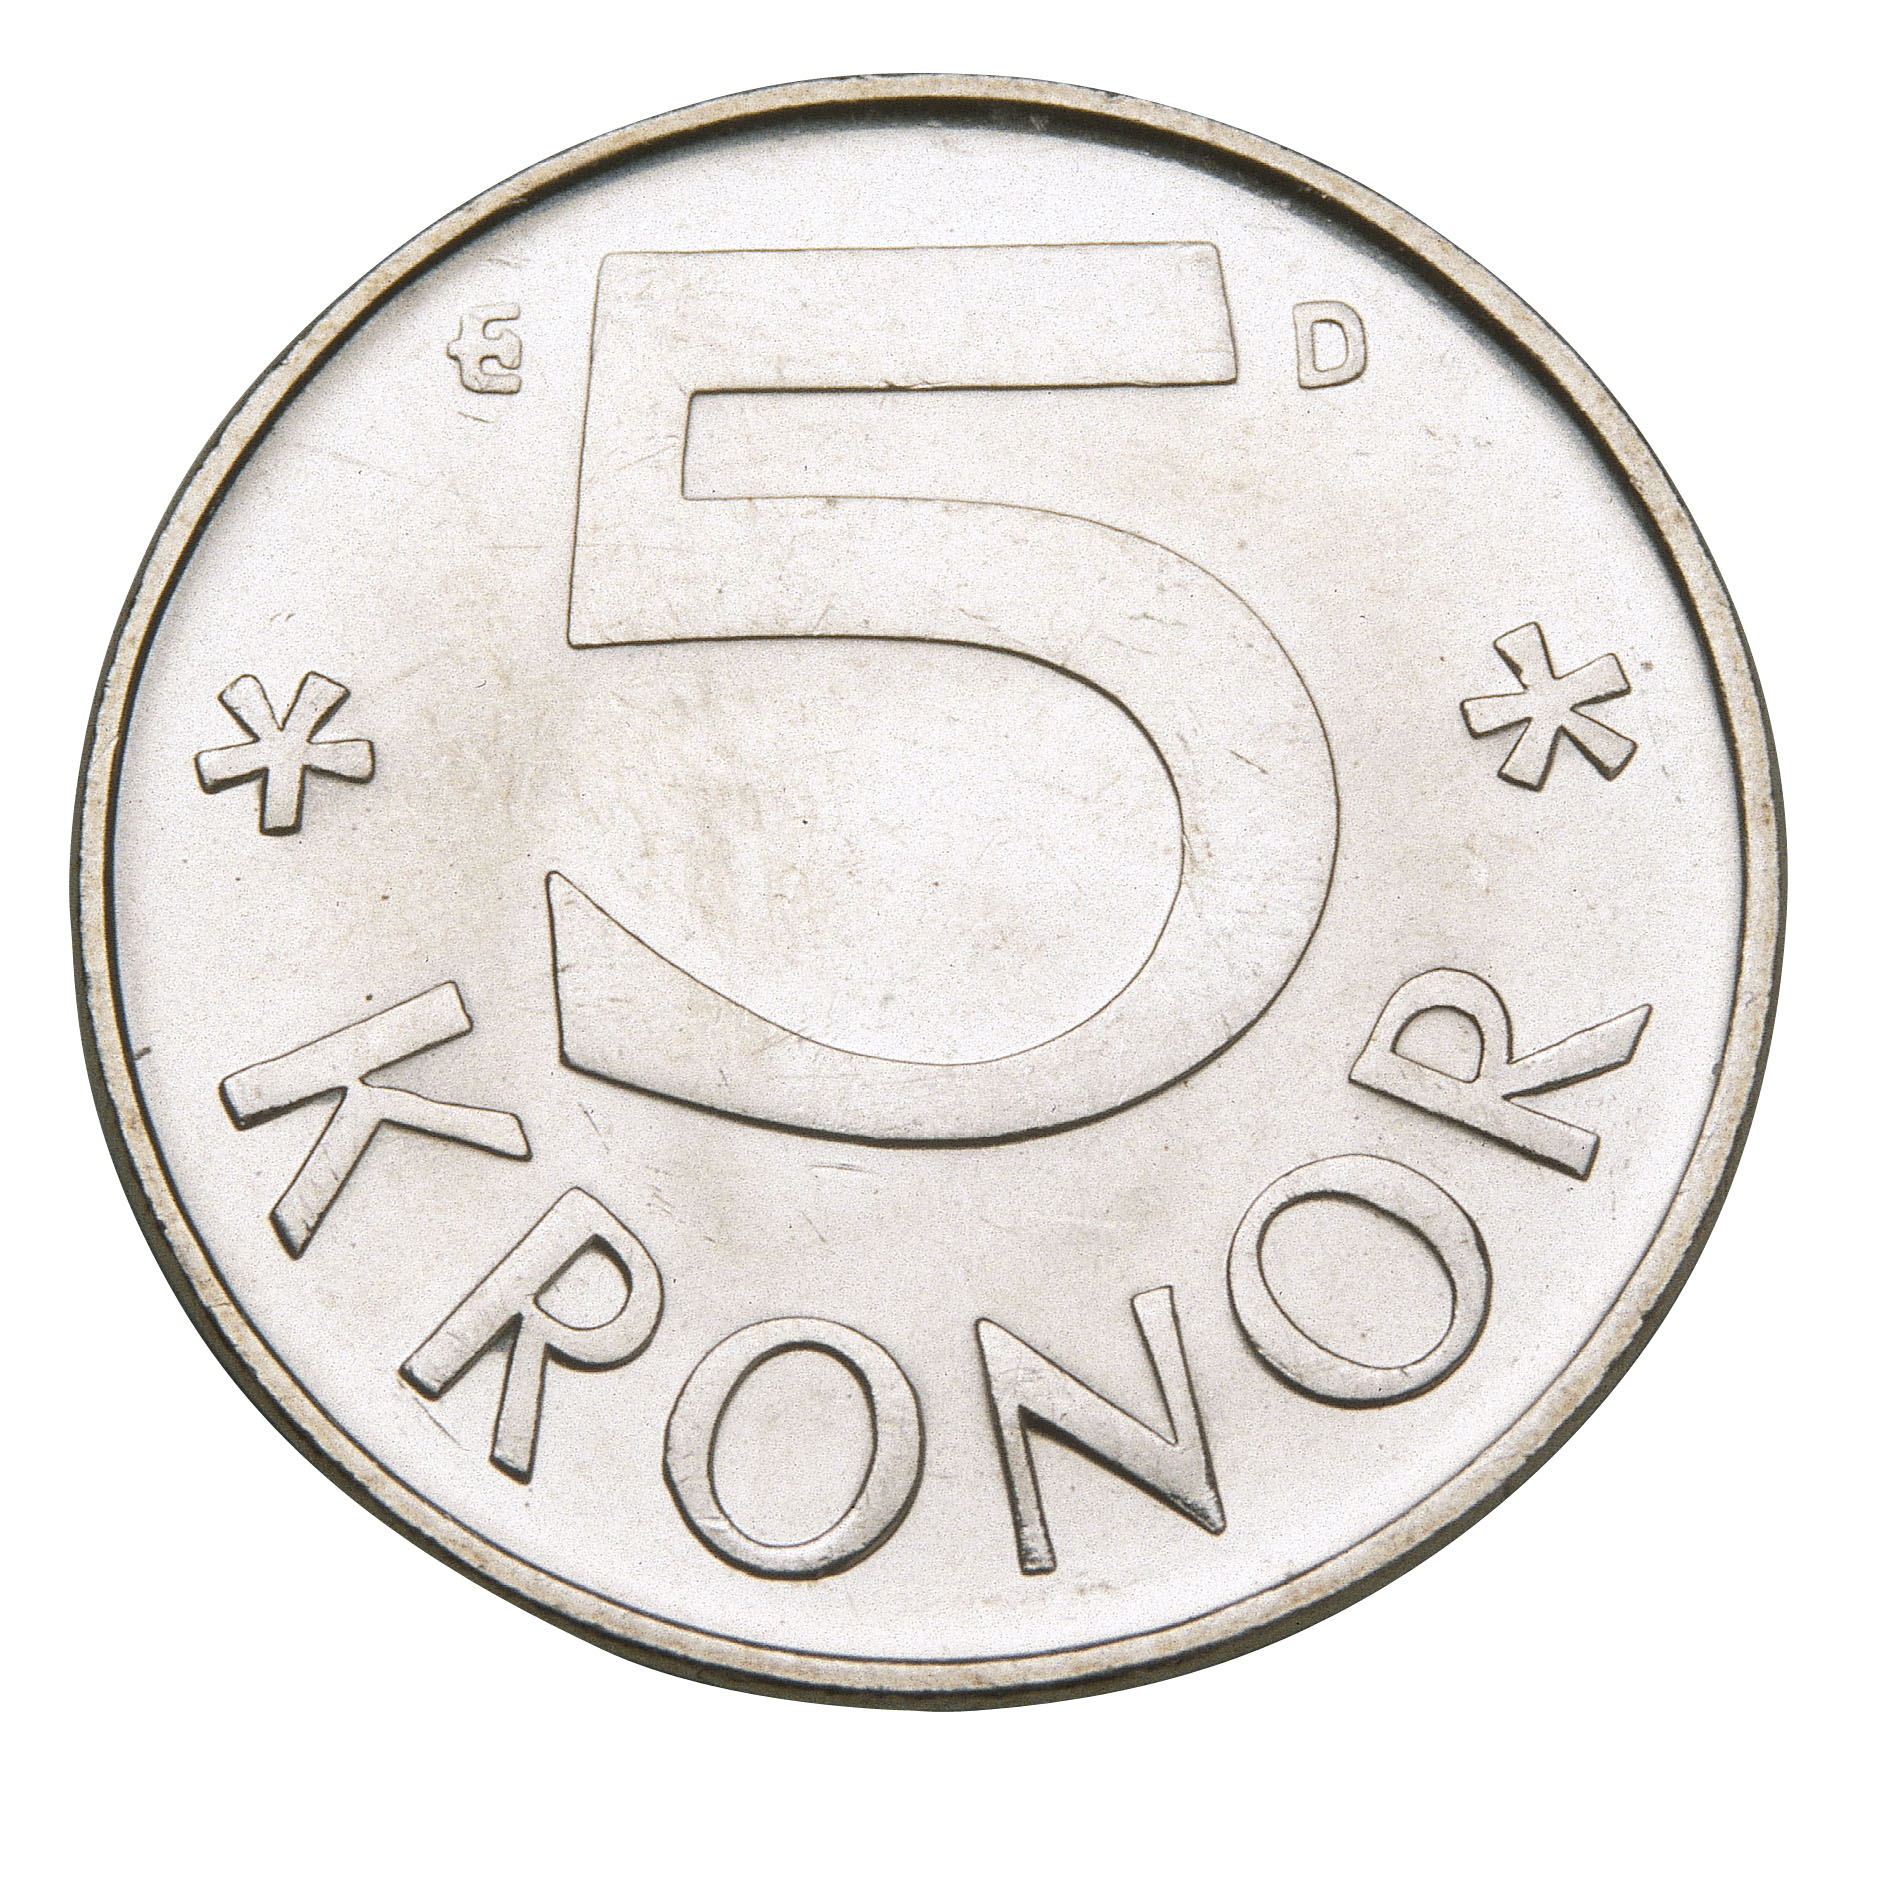 Swedish five crown coin